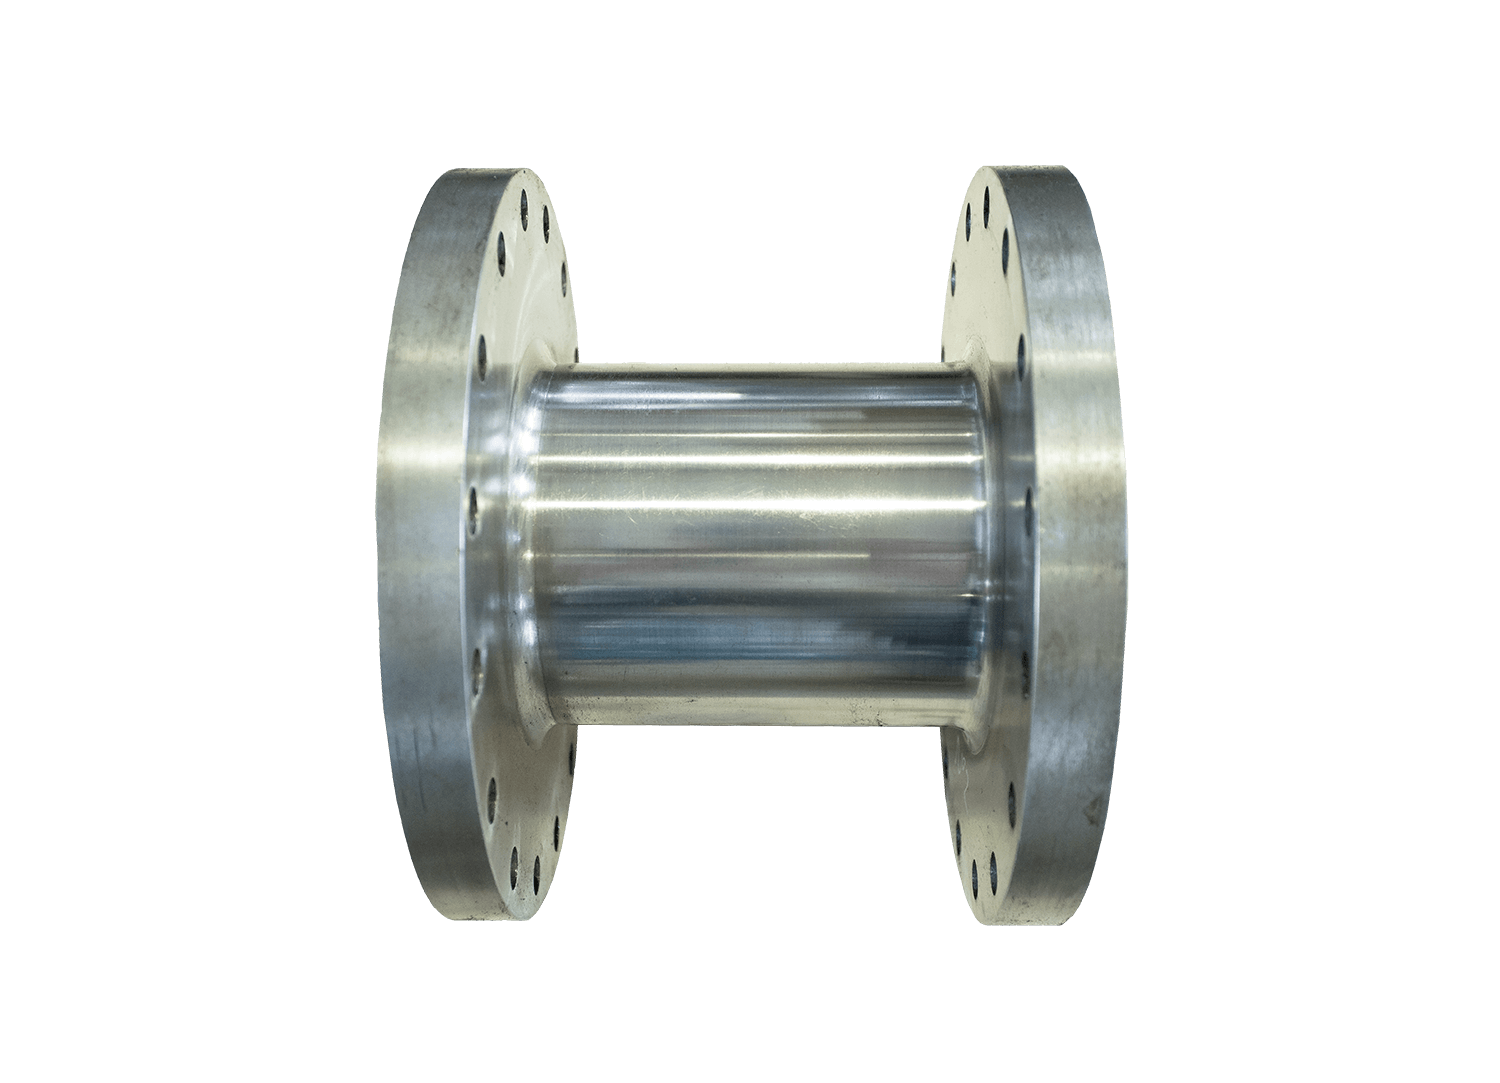 Flange - Bearing - Coupling